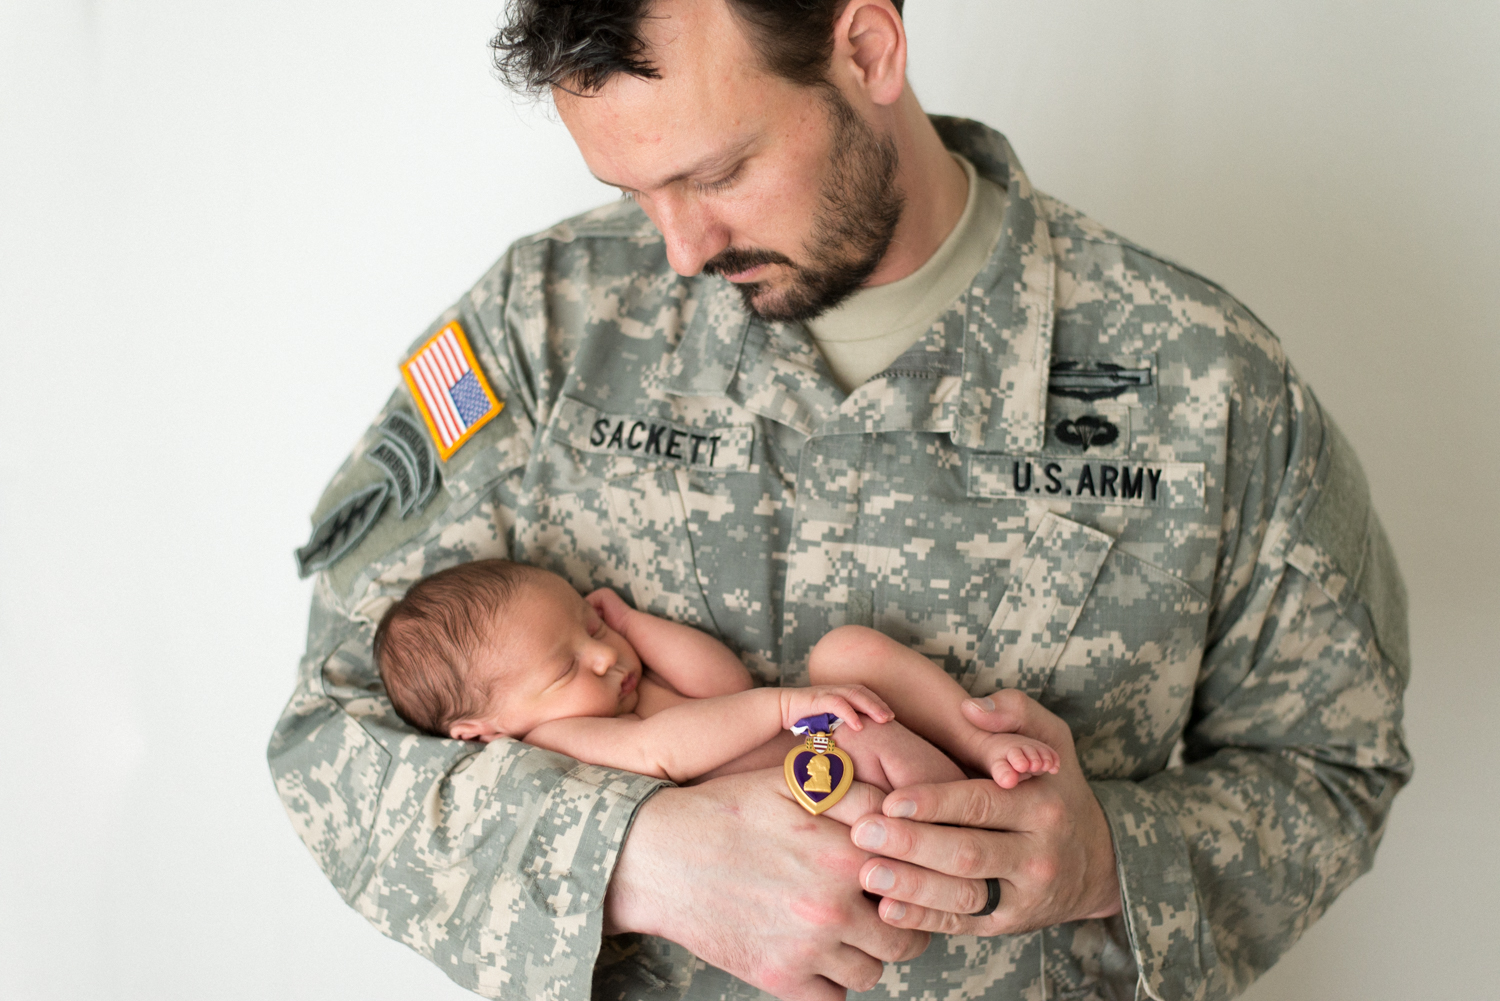 portland-newborn-baby-photographer-special-forces-purple-heart-veteran-army-shelley-marie-photo-25